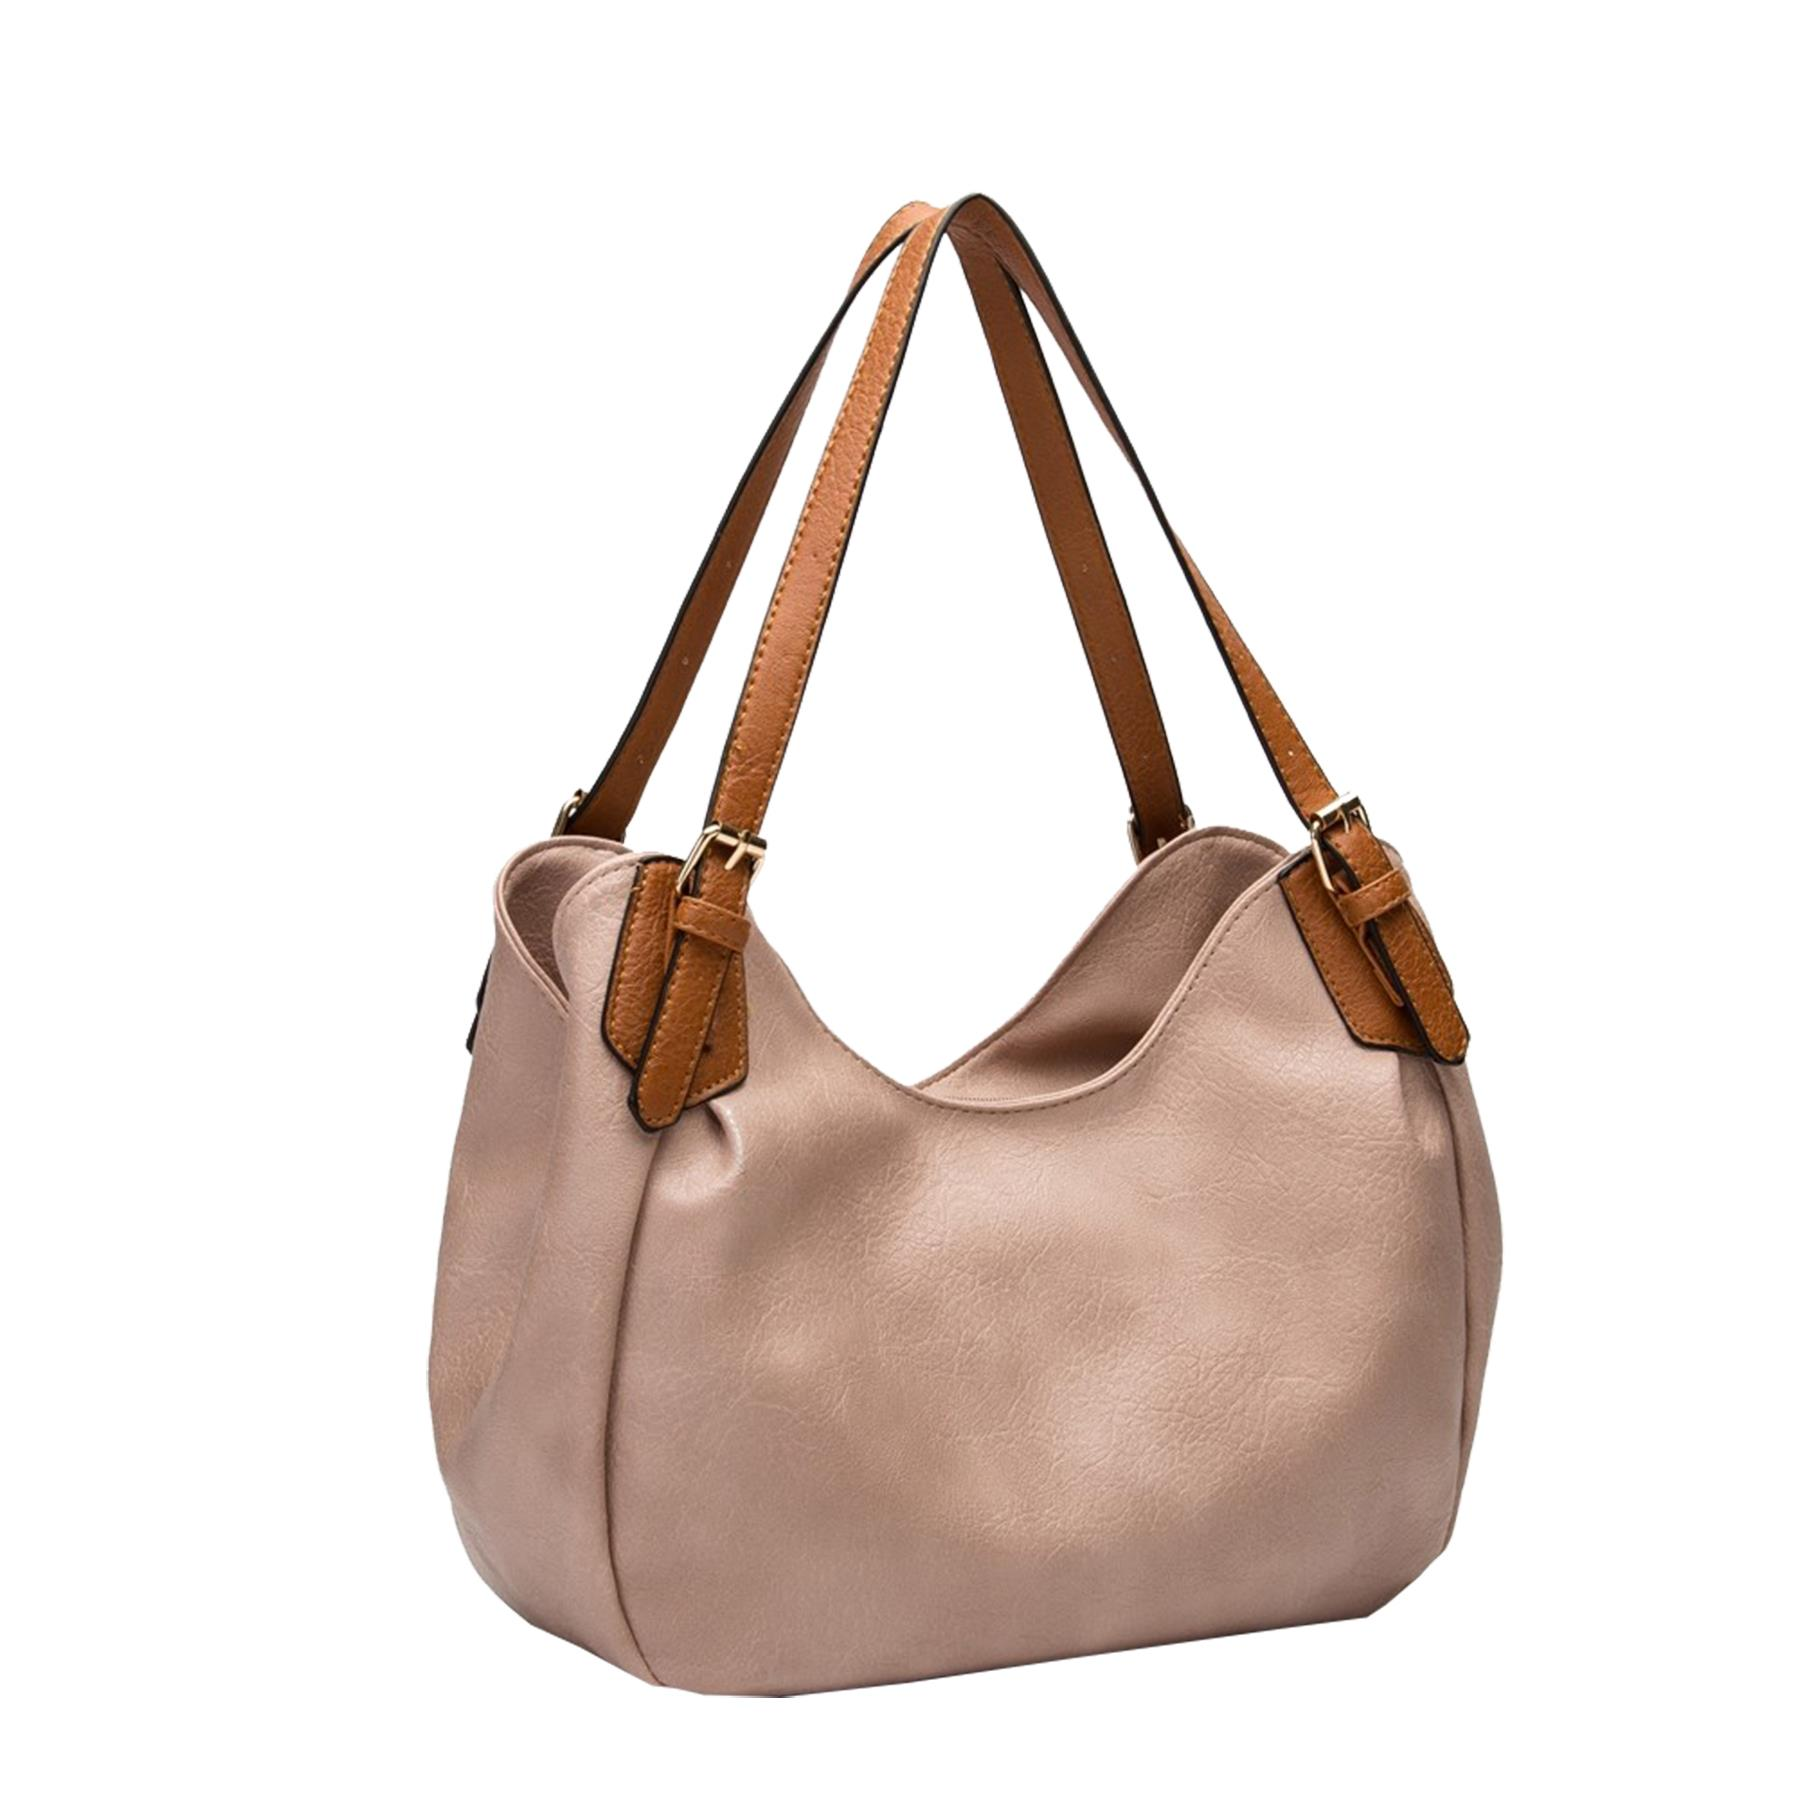 New-Ladies-Buckled-Straps-Two-Toned-Faux-Leather-Slouchy-Shoulder-Bag thumbnail 12